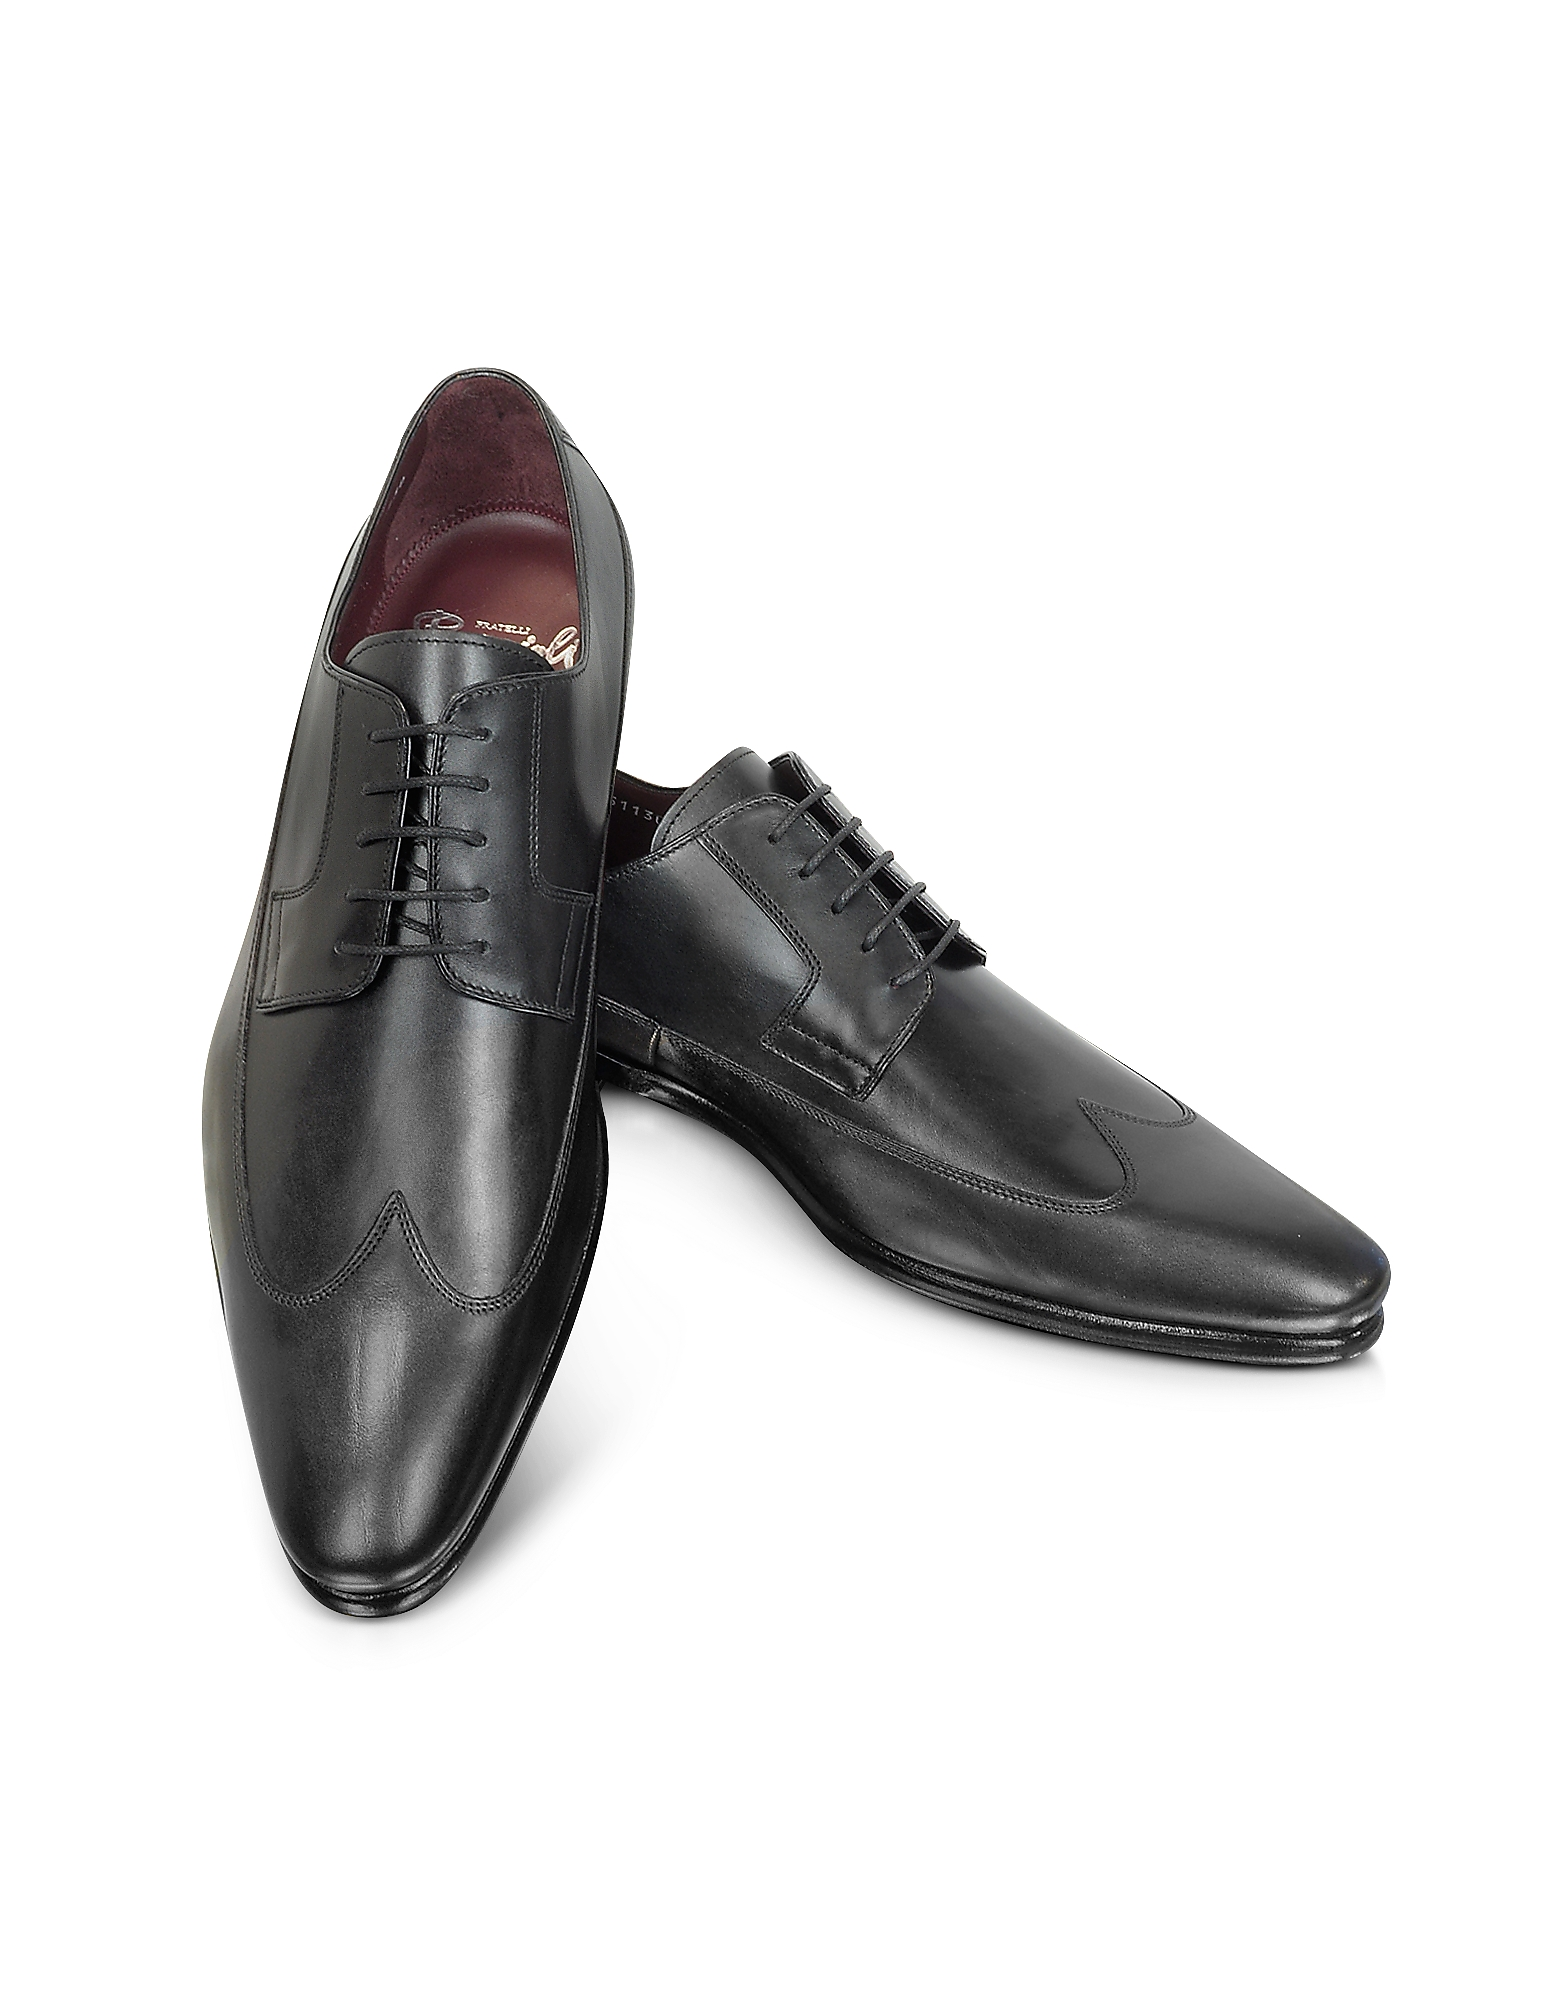 Fratelli Borgioli Shoes, Tamigi - Black Wingtip Derby